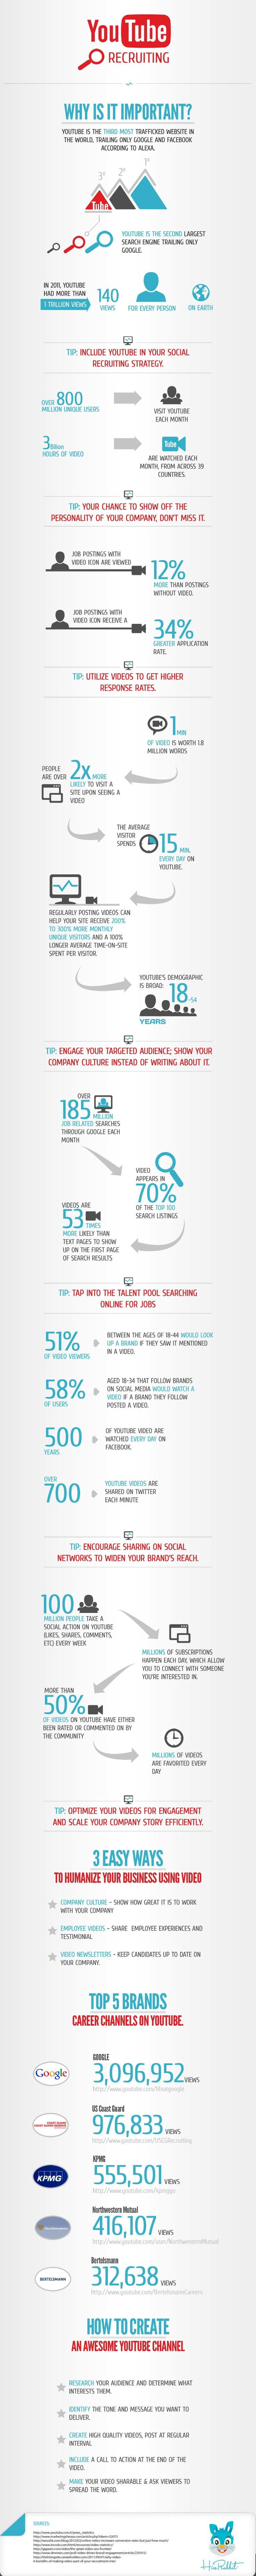 INFOGRAPHIC: How YouTube is Essential for Social Recruiting ~ The Undercover Recruiter